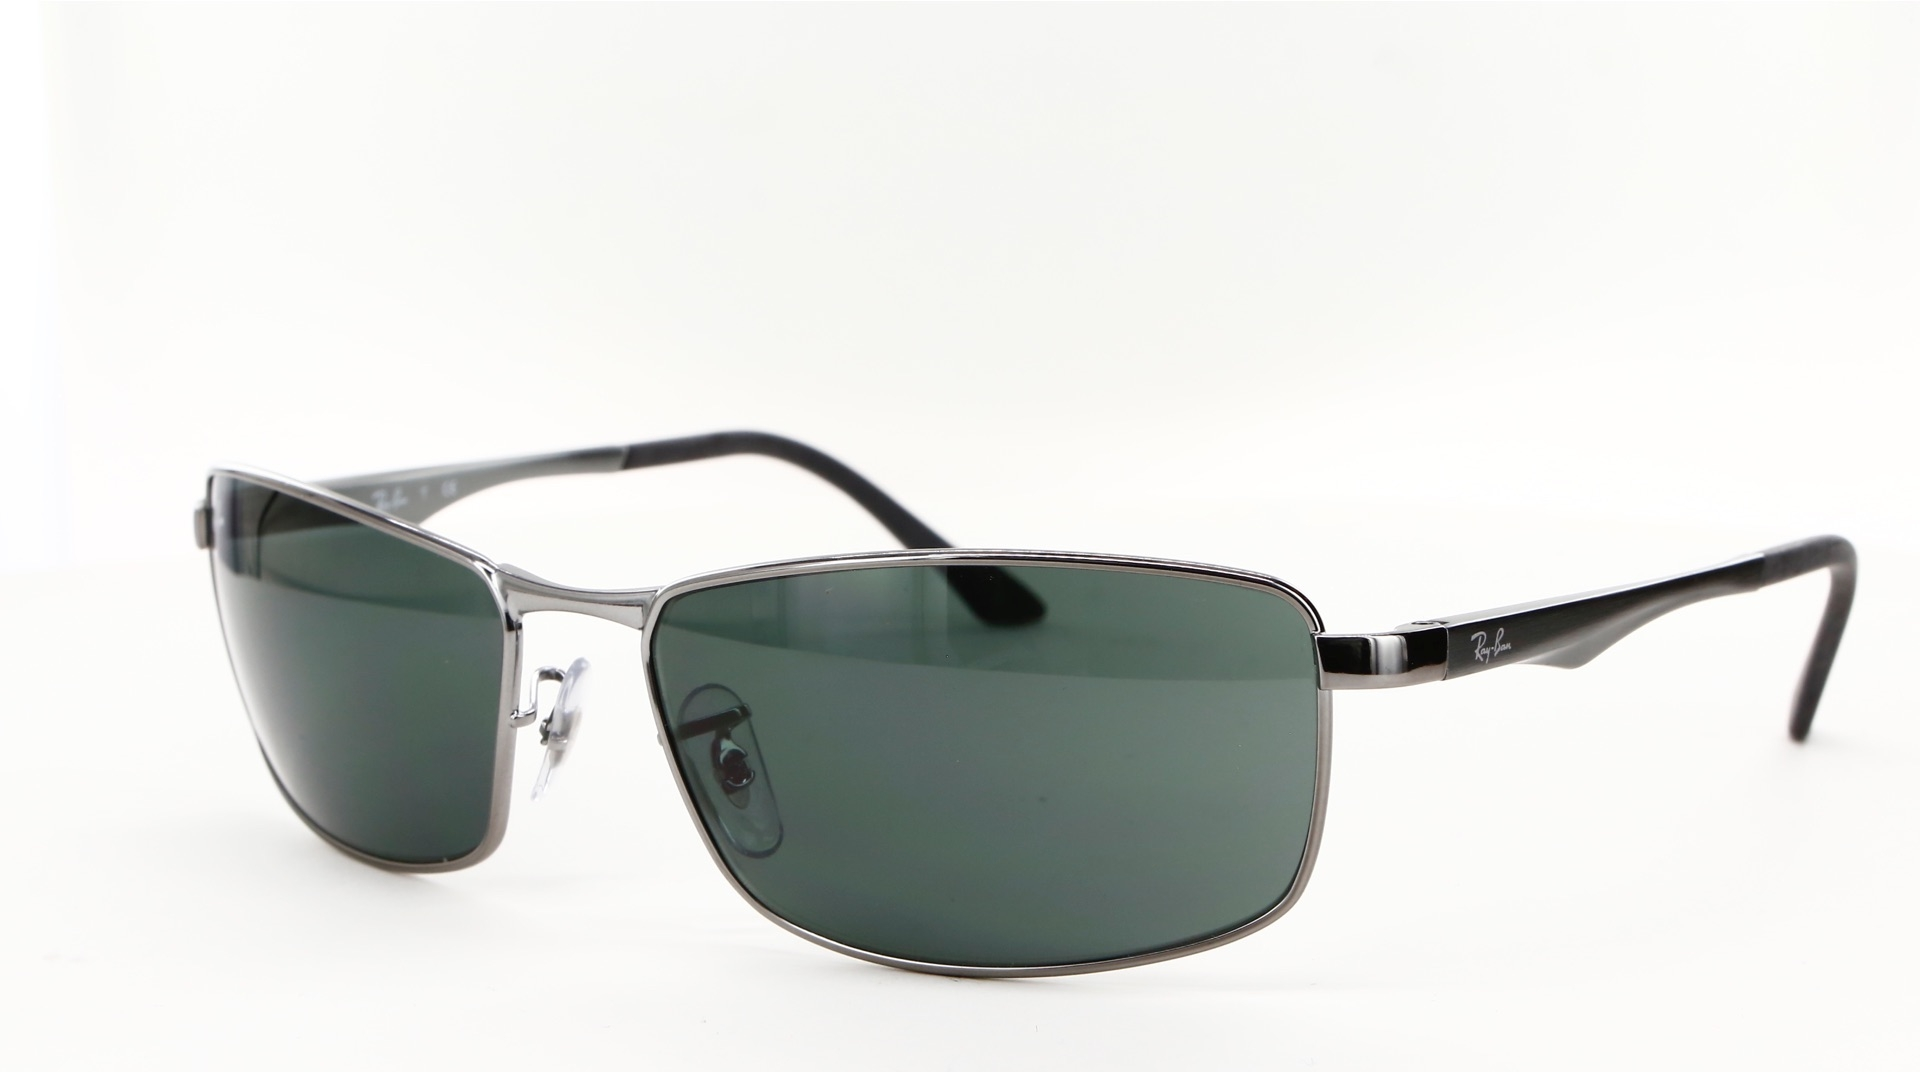 Ray-Ban - ref: 68377